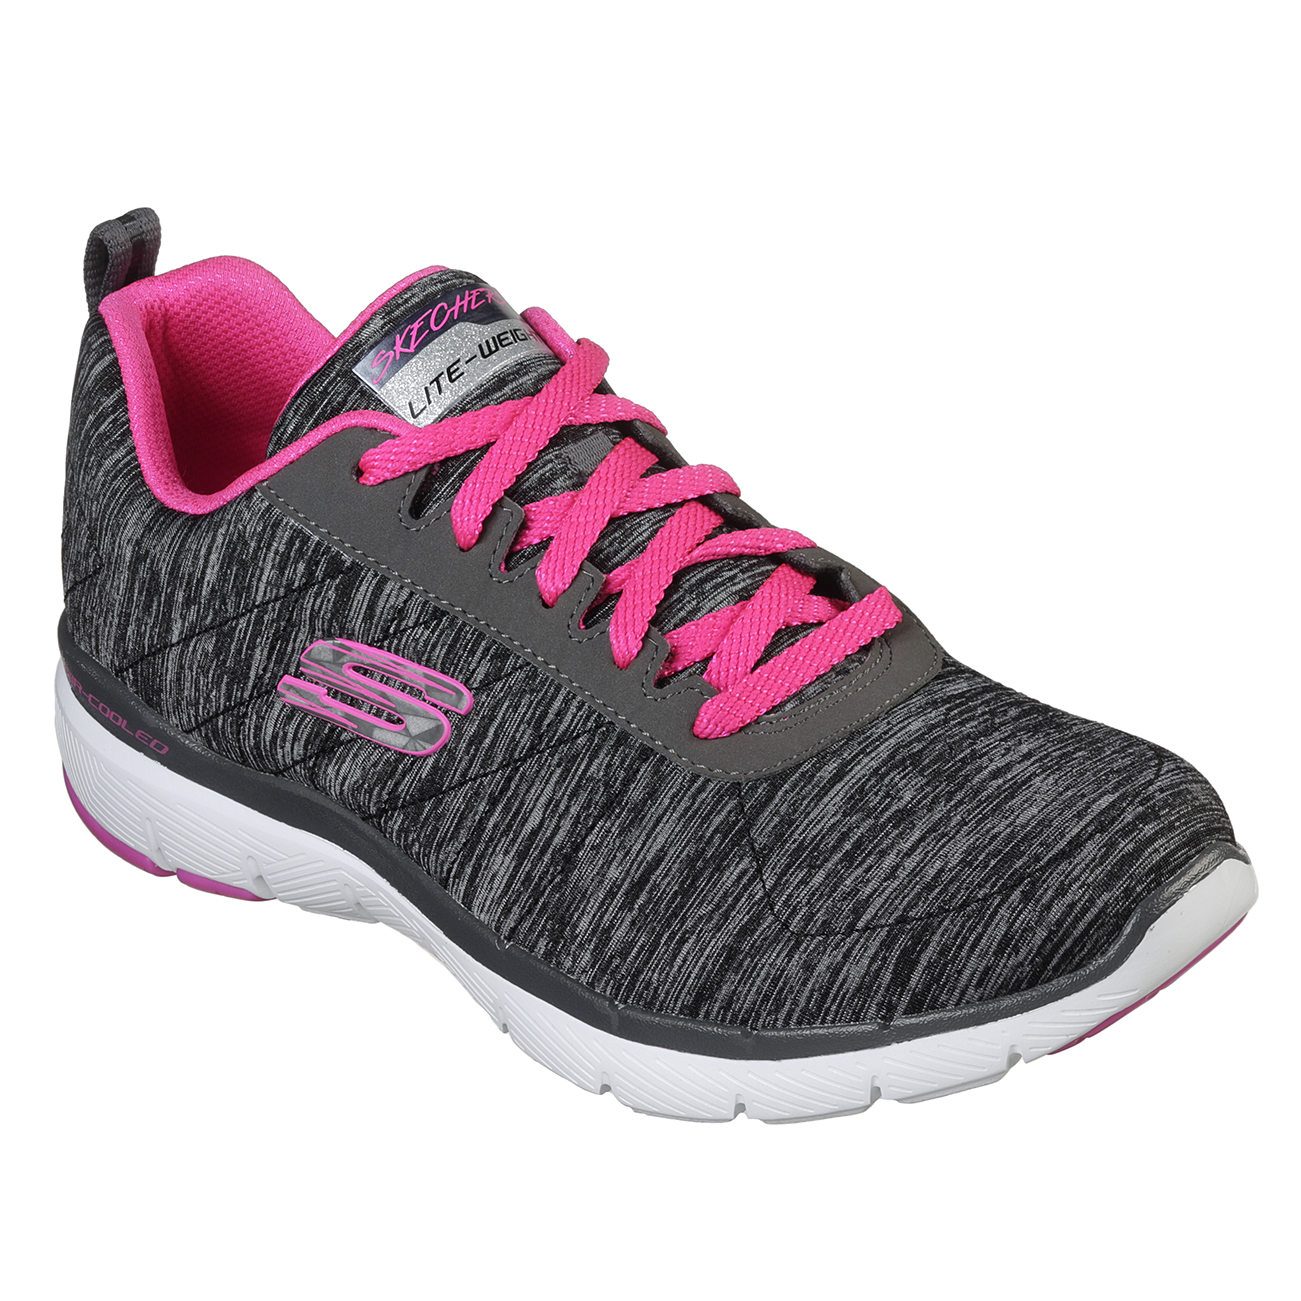 Skechers Flex Appeal 3.0 Insiders